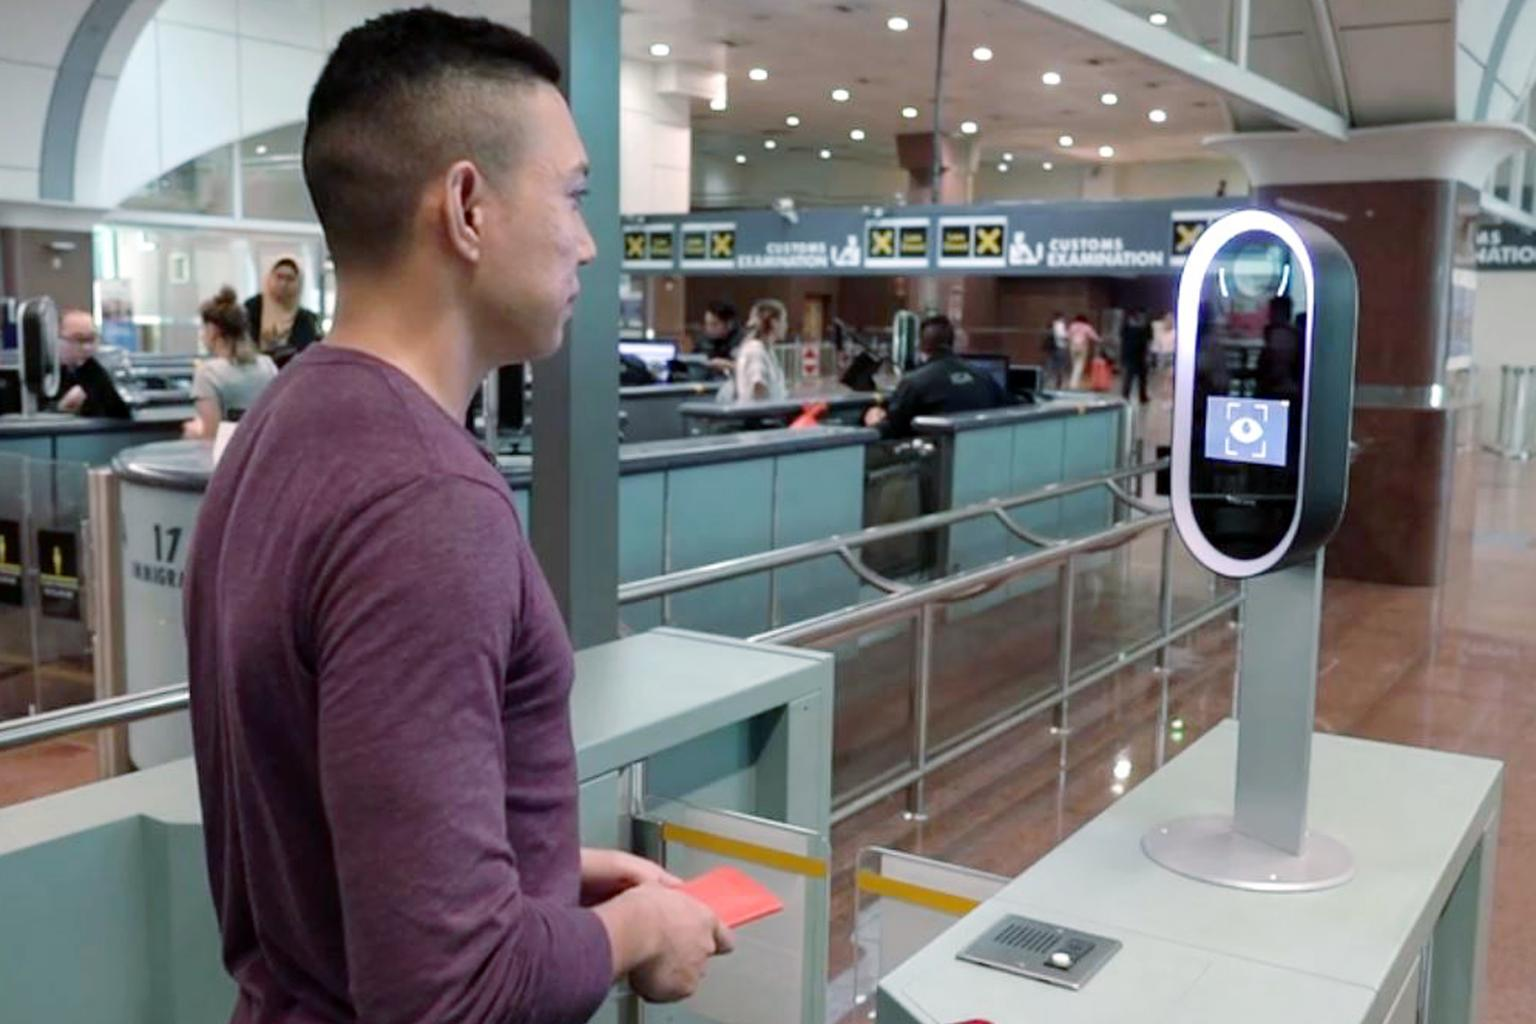 A trial in the immigration hall at Tuas Checkpoint that uses iris and facial images to clear immigration. Image: ST FILE